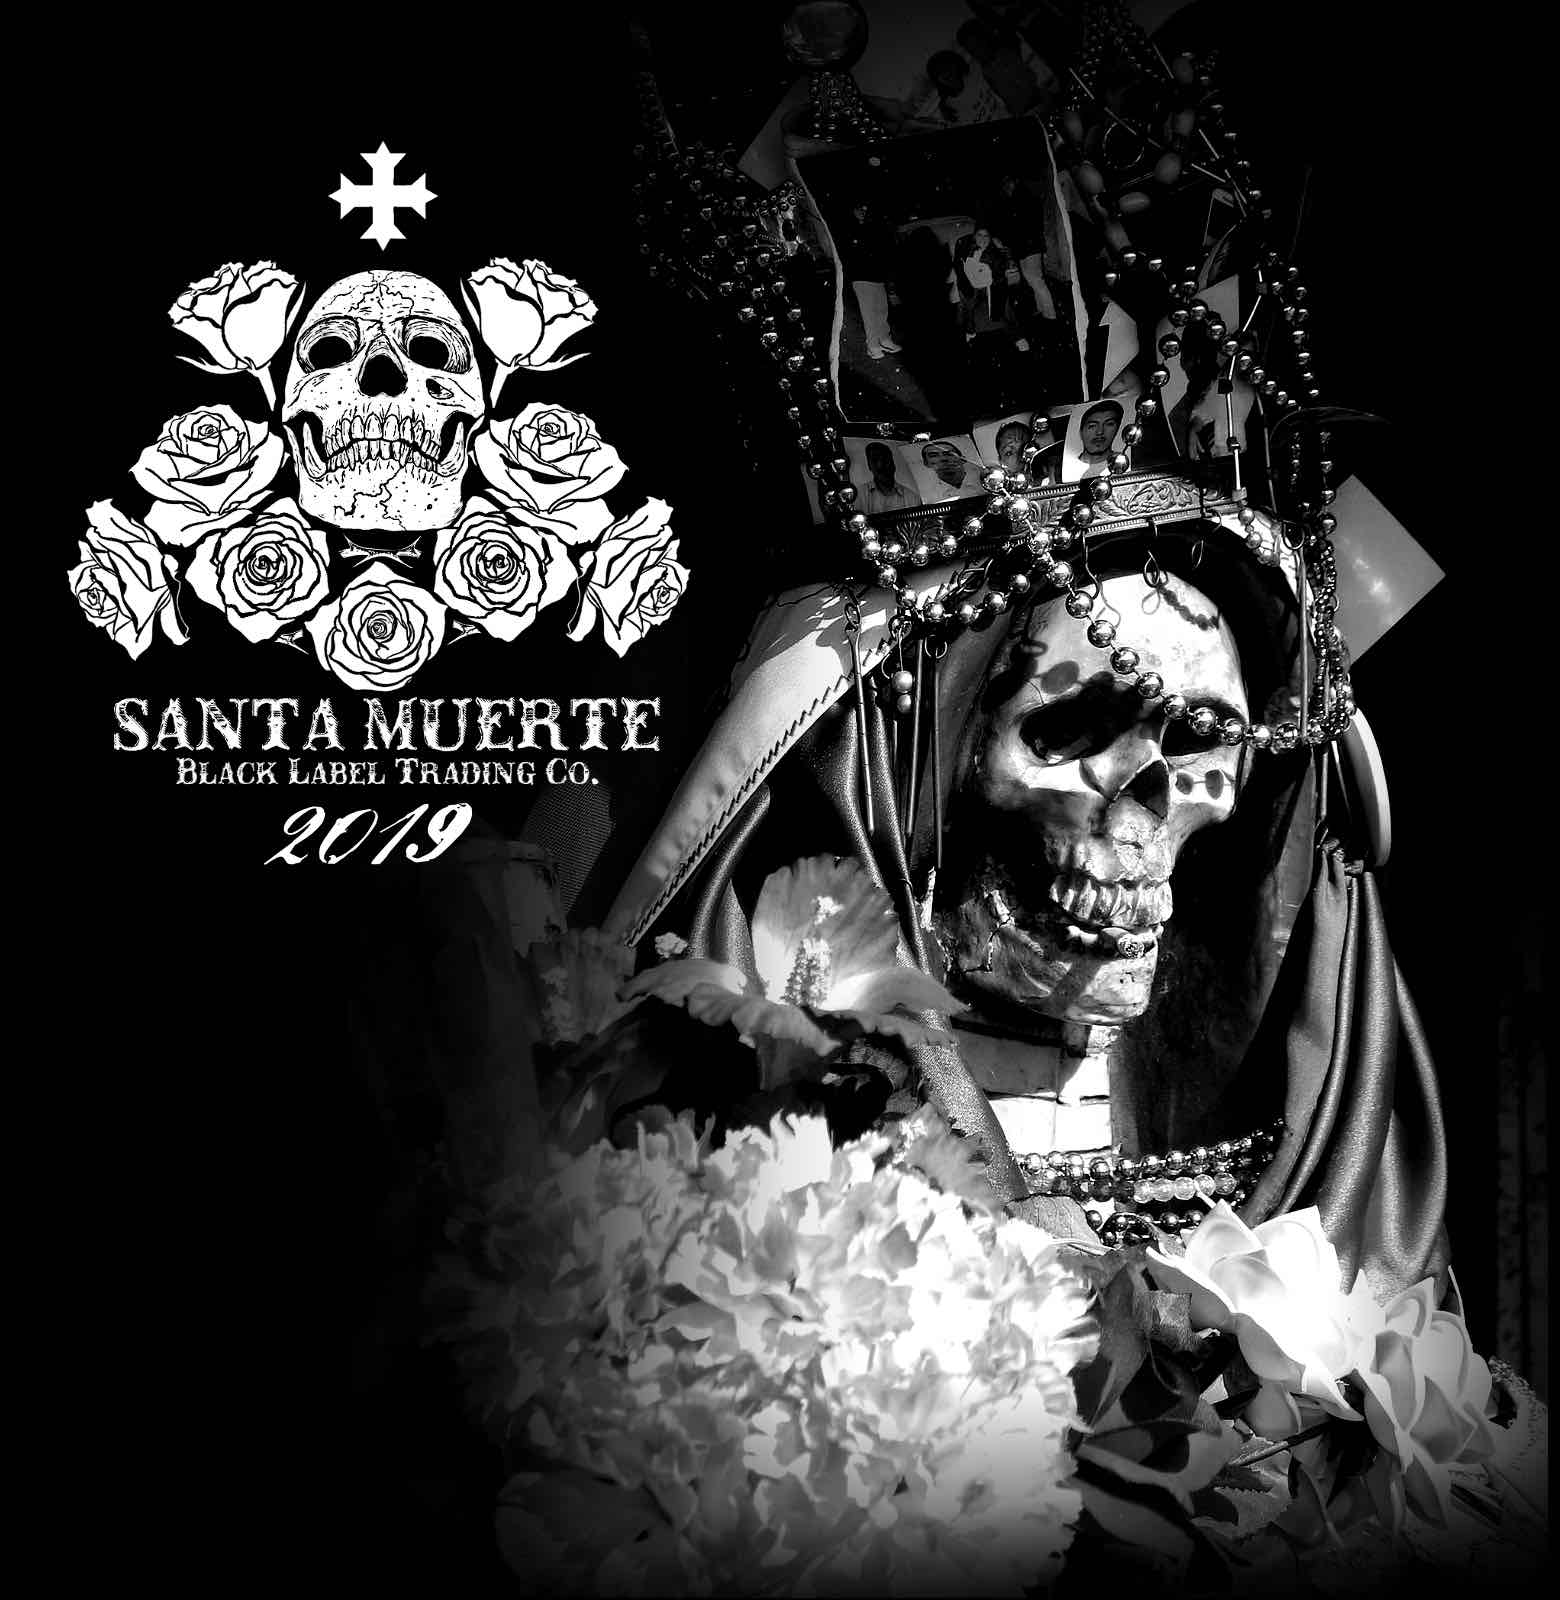 Cigar News: Black Label Trading Company Santa Muerte 2019 Released